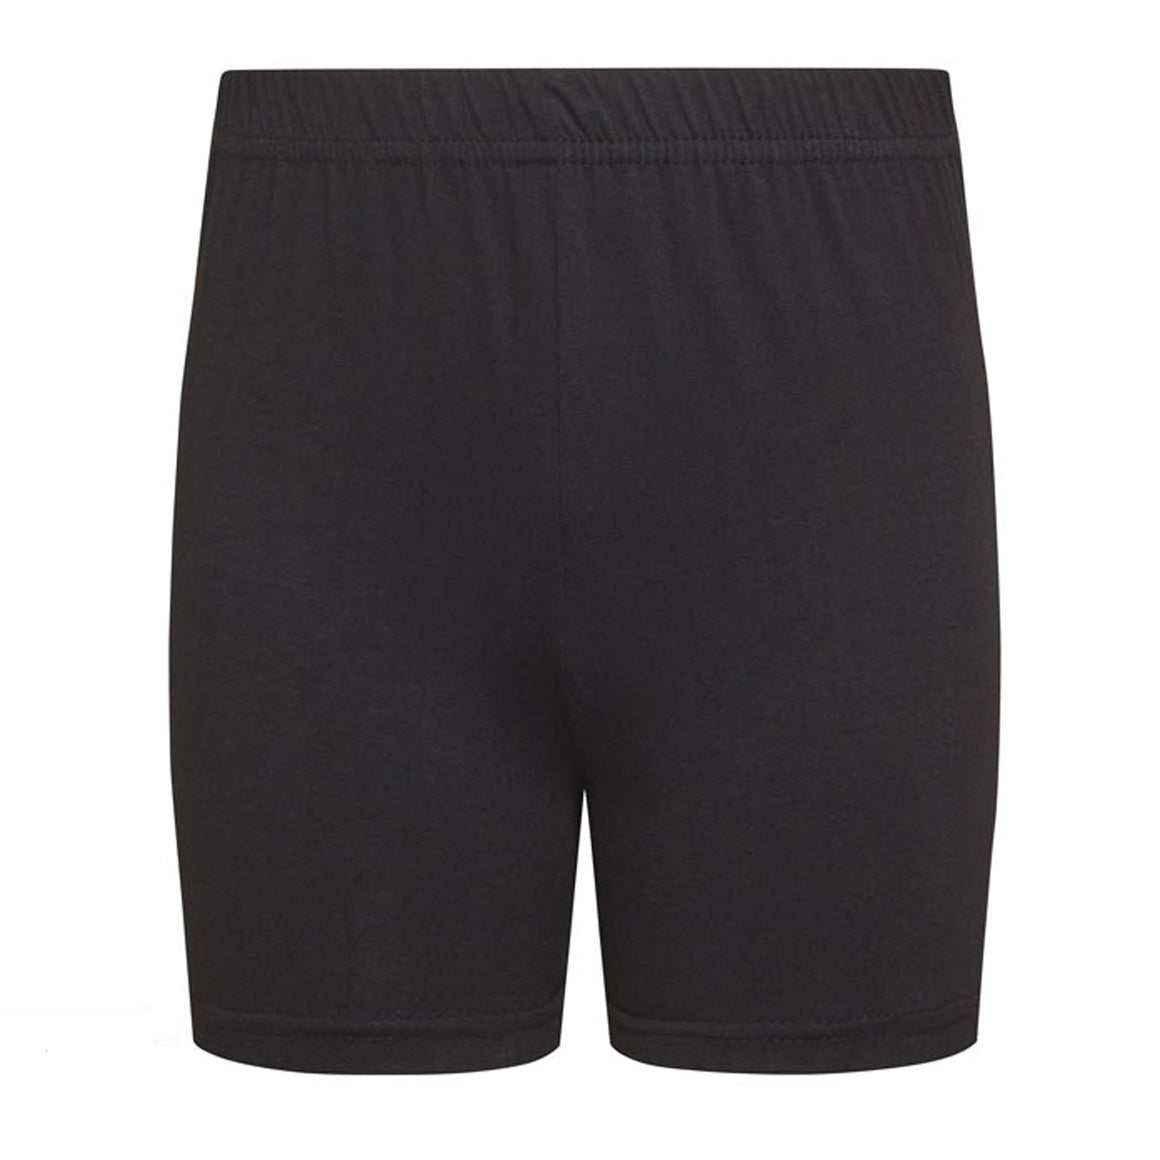 Cycle Short - Stretch Cotton - Black